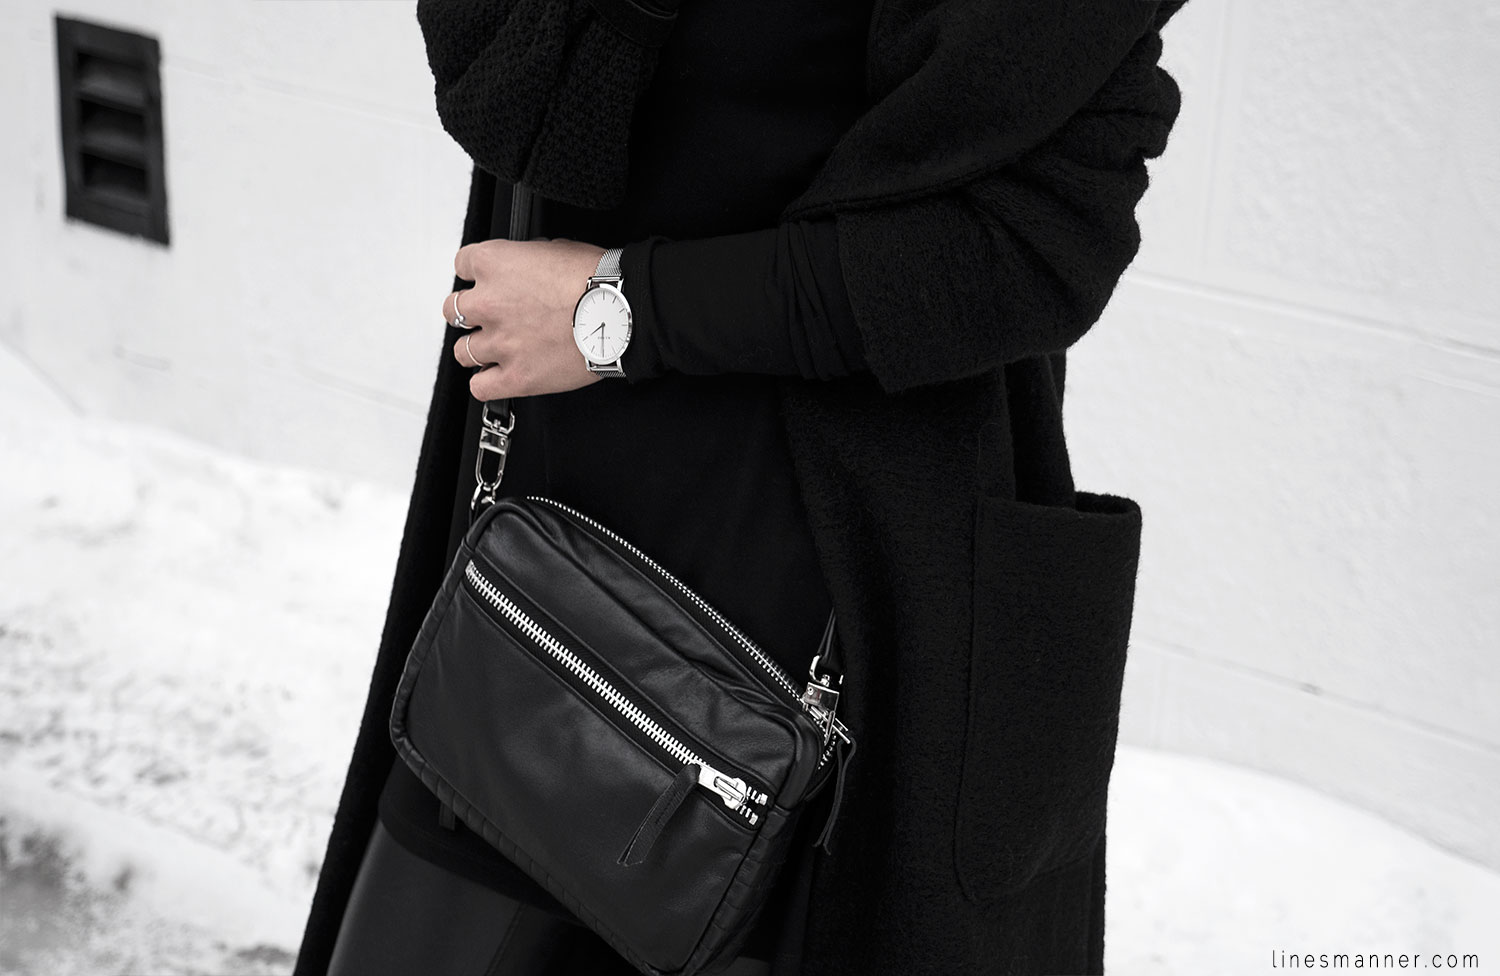 Lines-Manner-All_black_everything-monochrome-essentials-oversize-fit-textures-minimal-details-basics-staples-kayering-bundled-enveloped-silver-leather-8